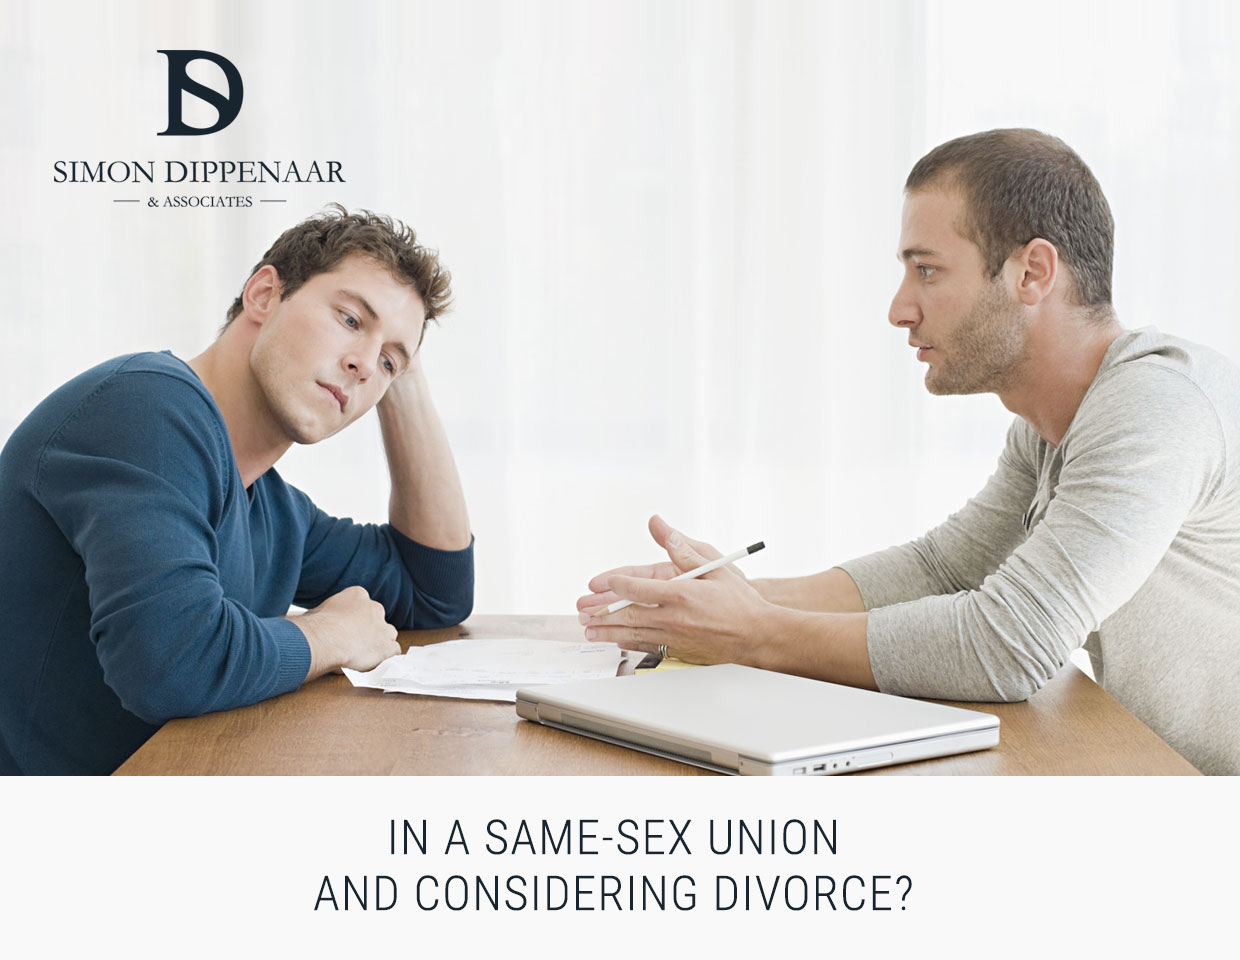 Civil union divorce South Africa